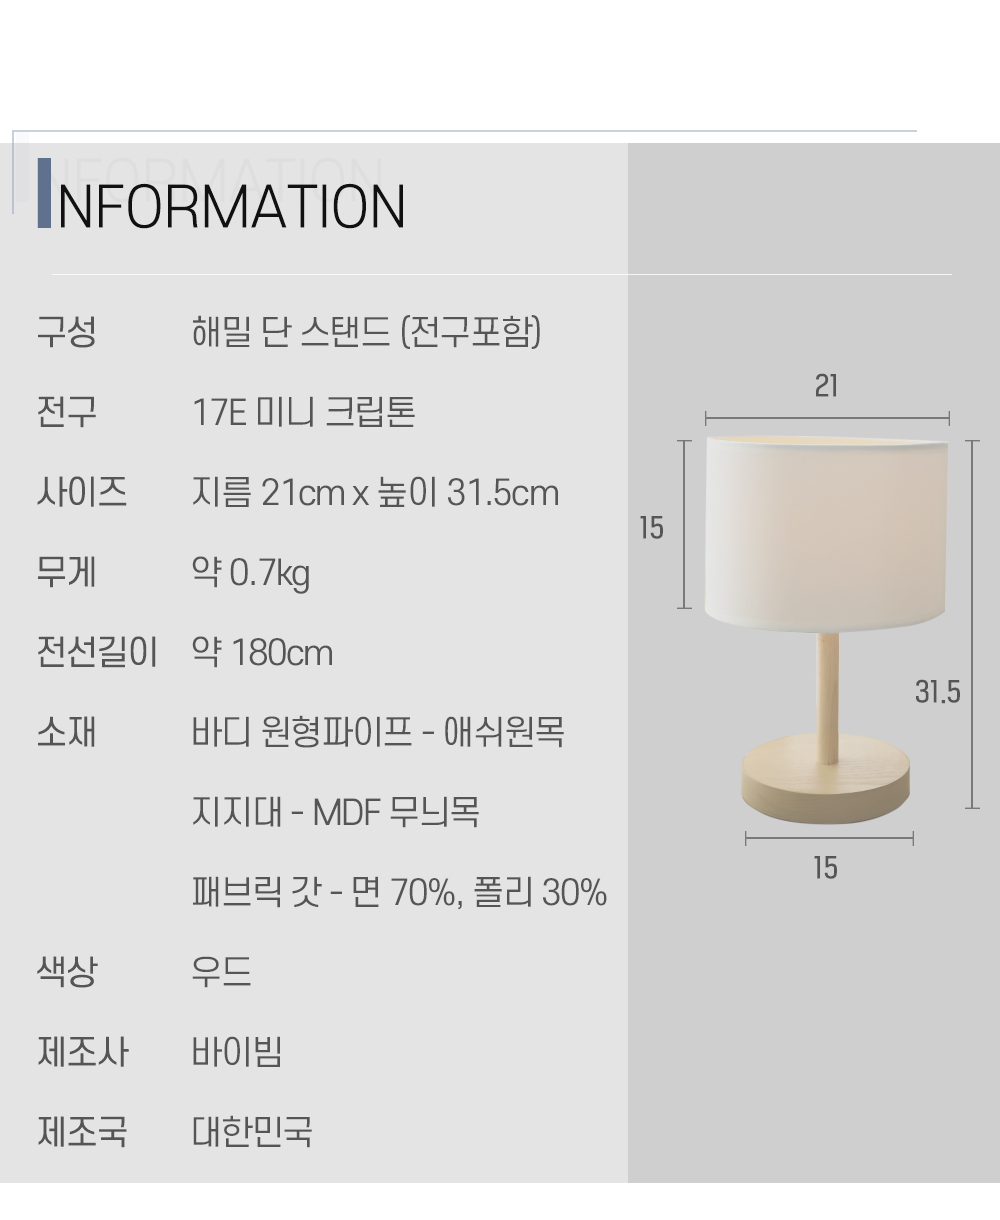 buybeam Haemil stand light information